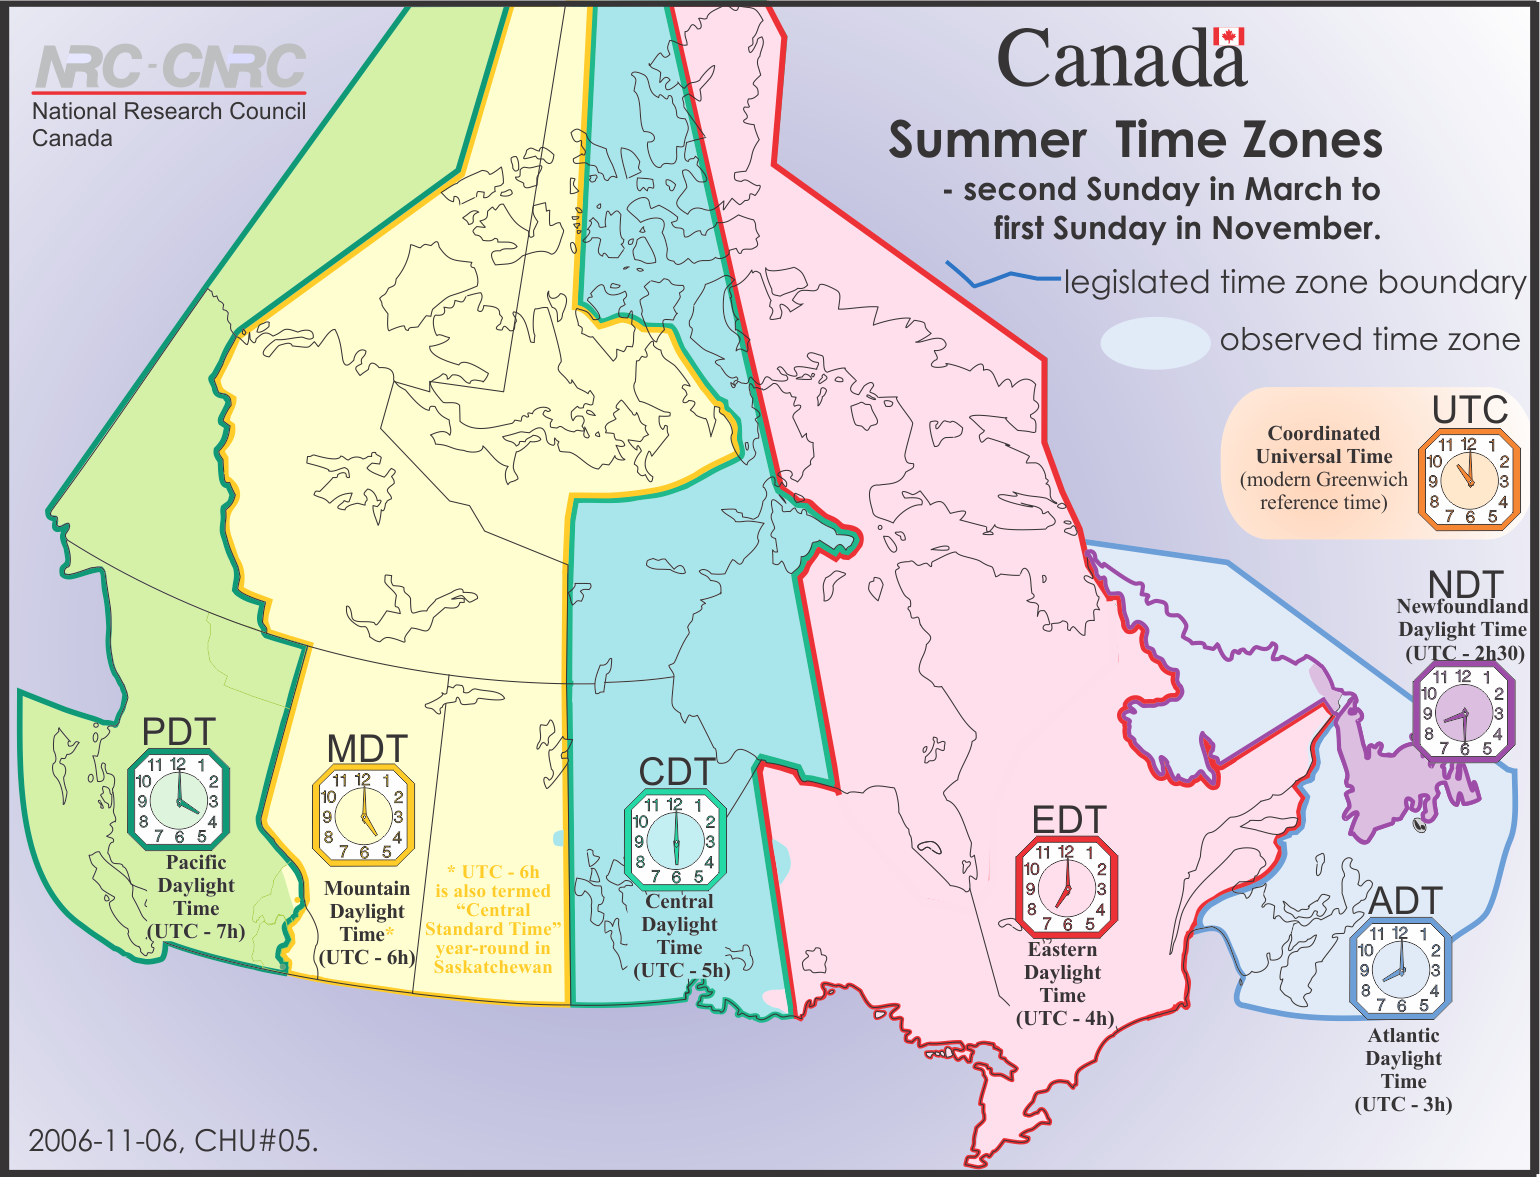 Summer Time Zones - Canada